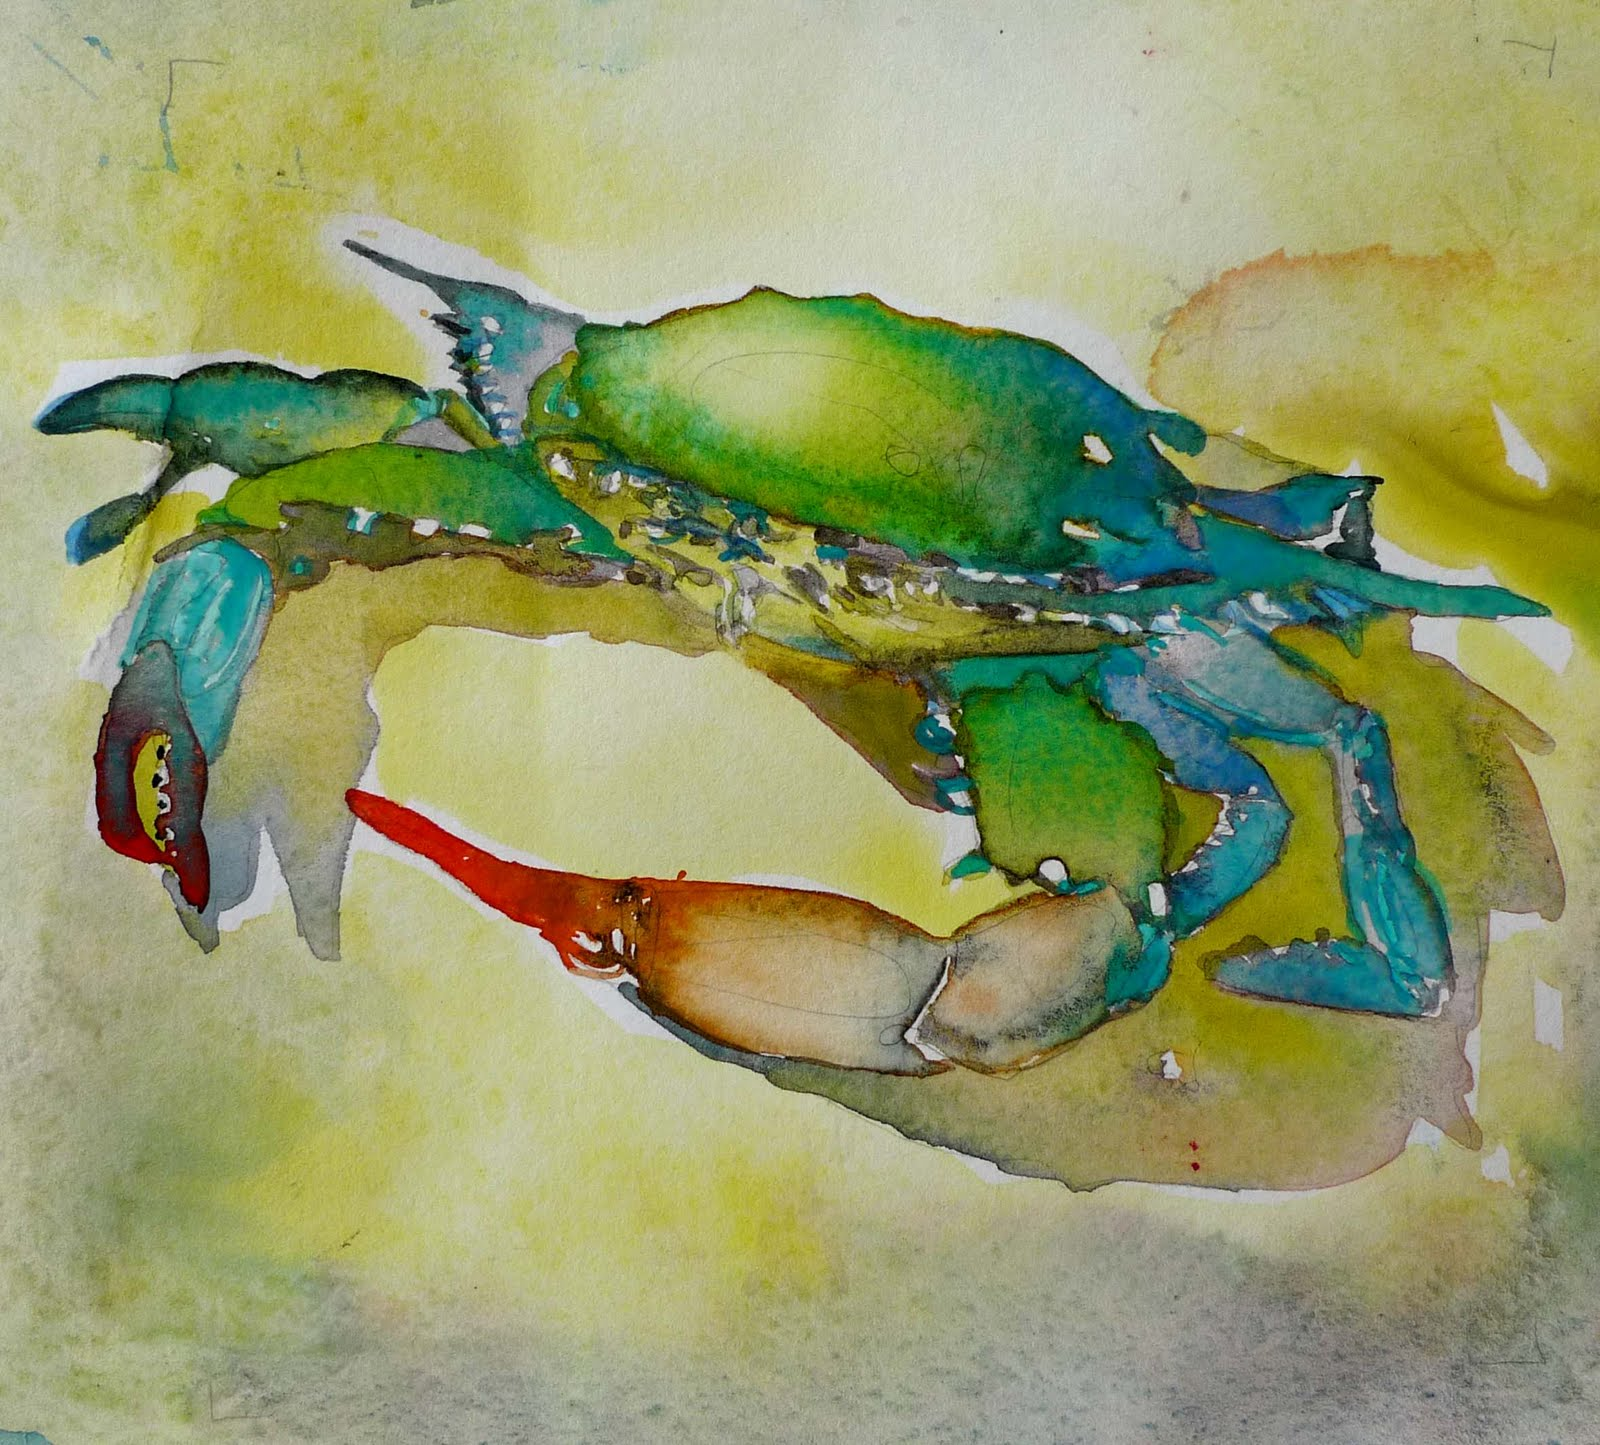 Blue crab watercolor painting